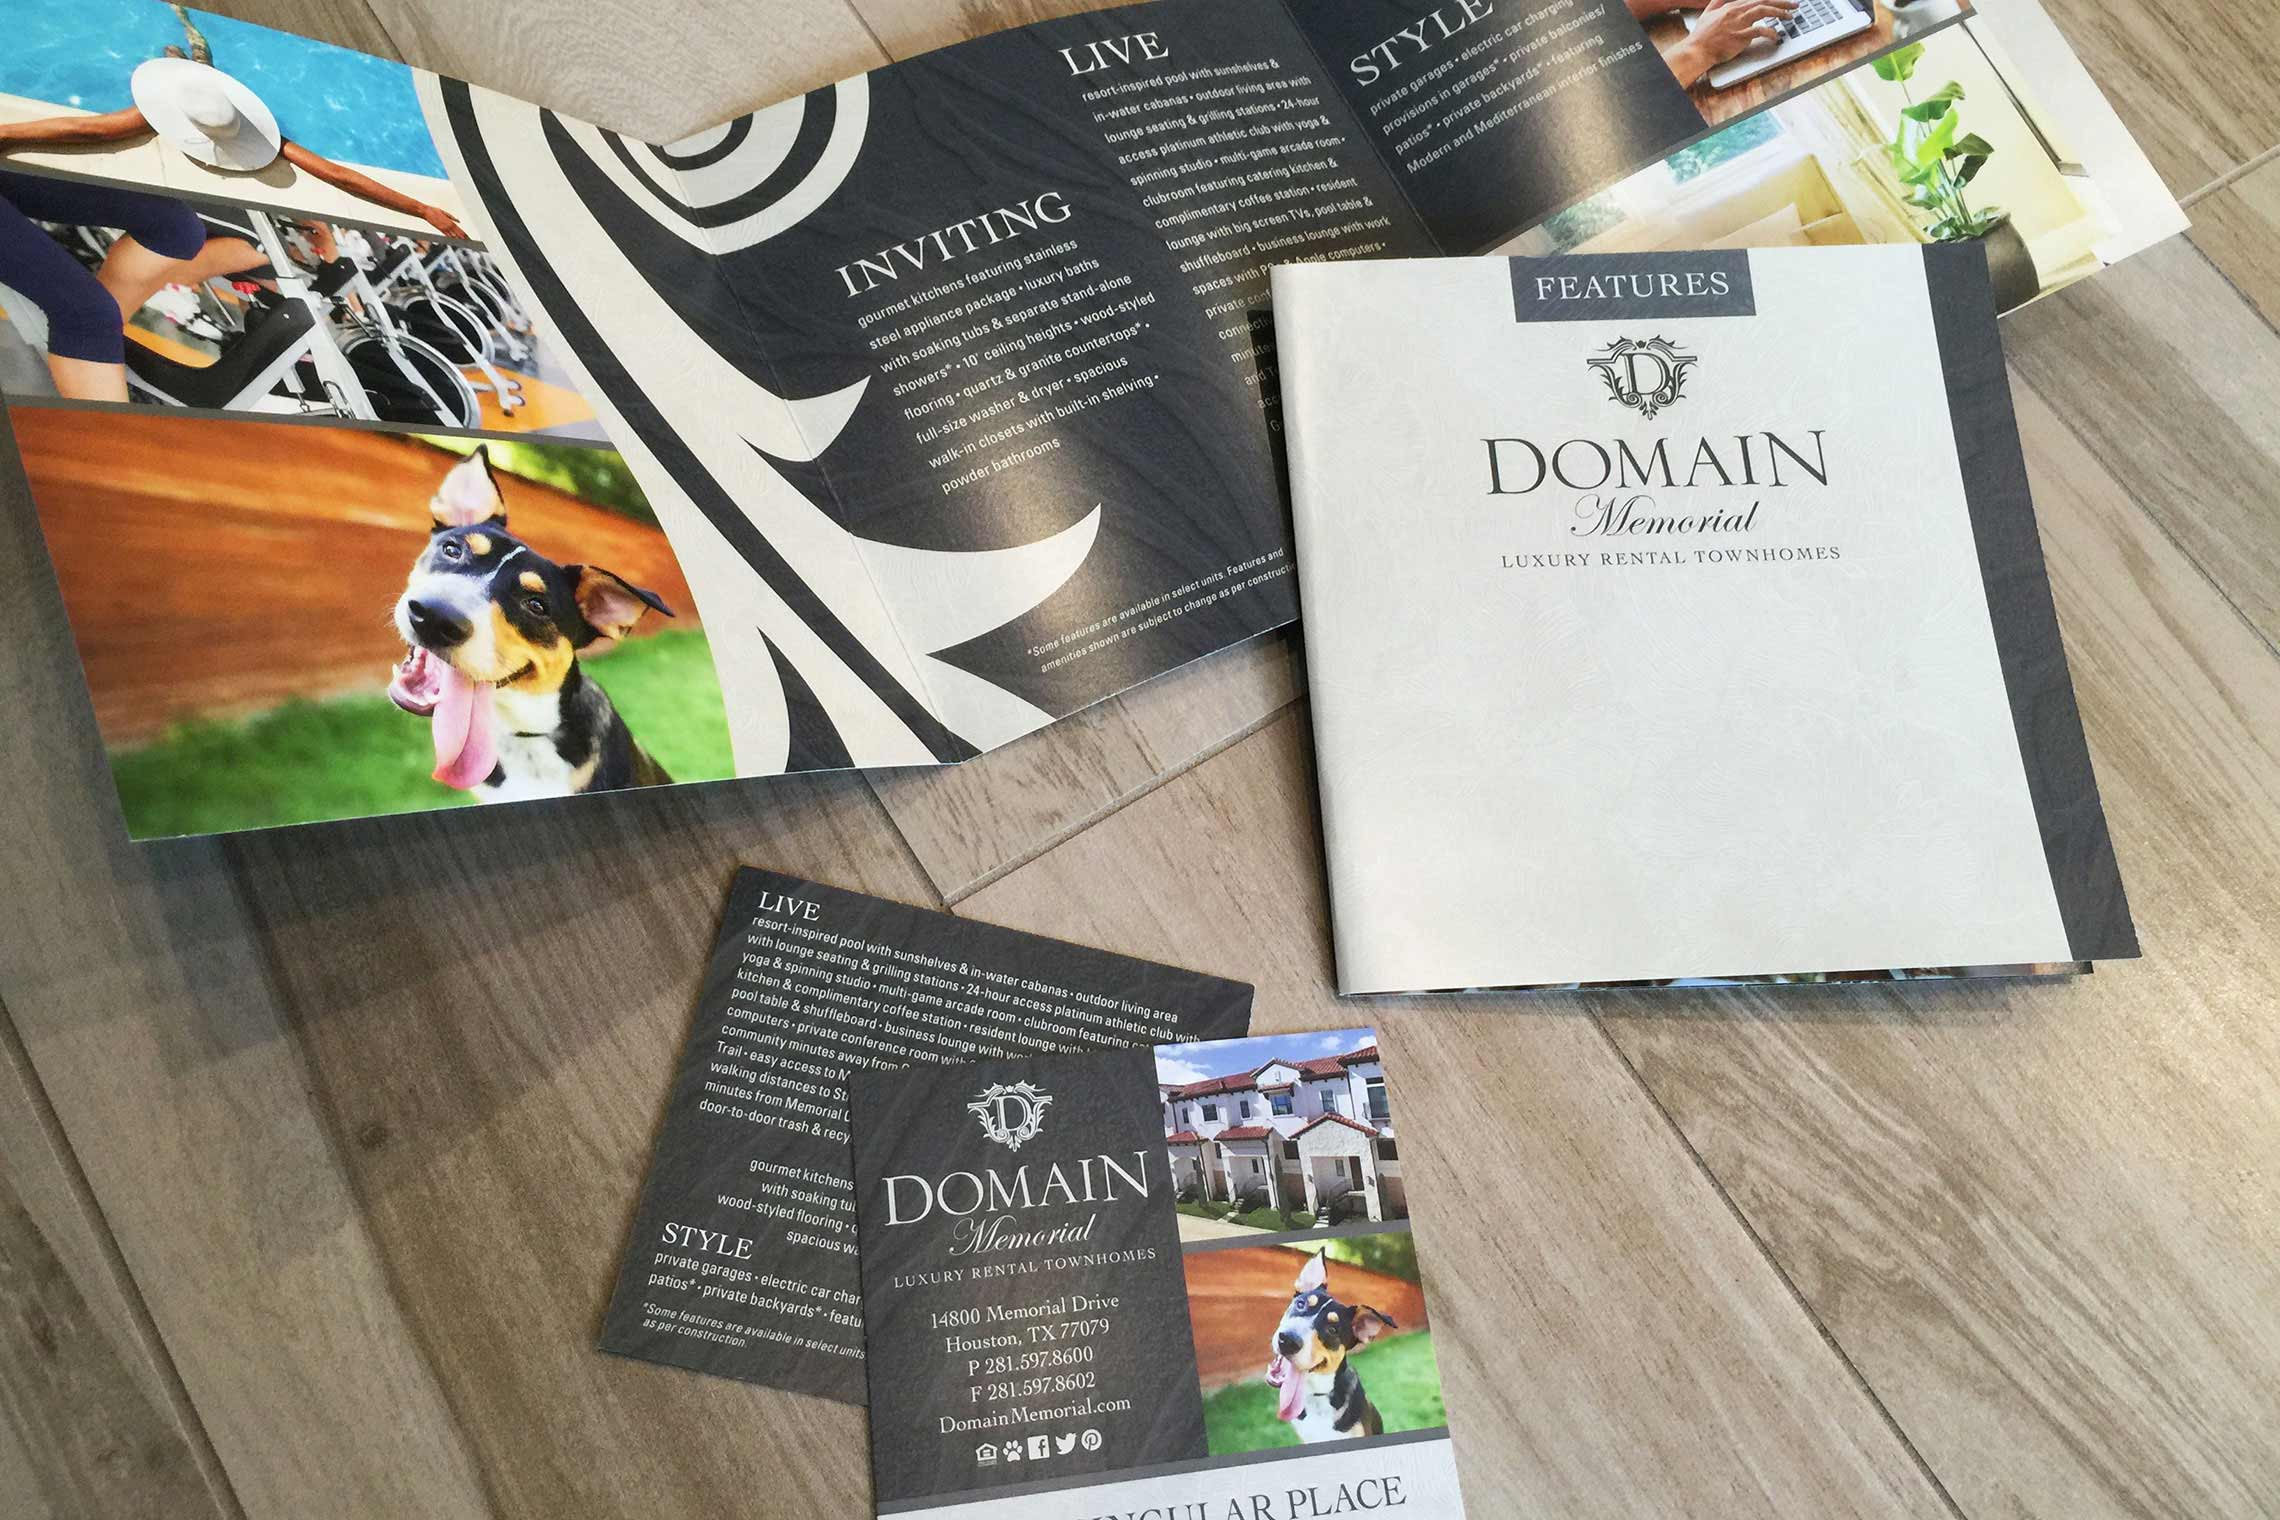 Domain Memorial Luxury Rental Townhomes - Amenity Fold-Out and Promo Card